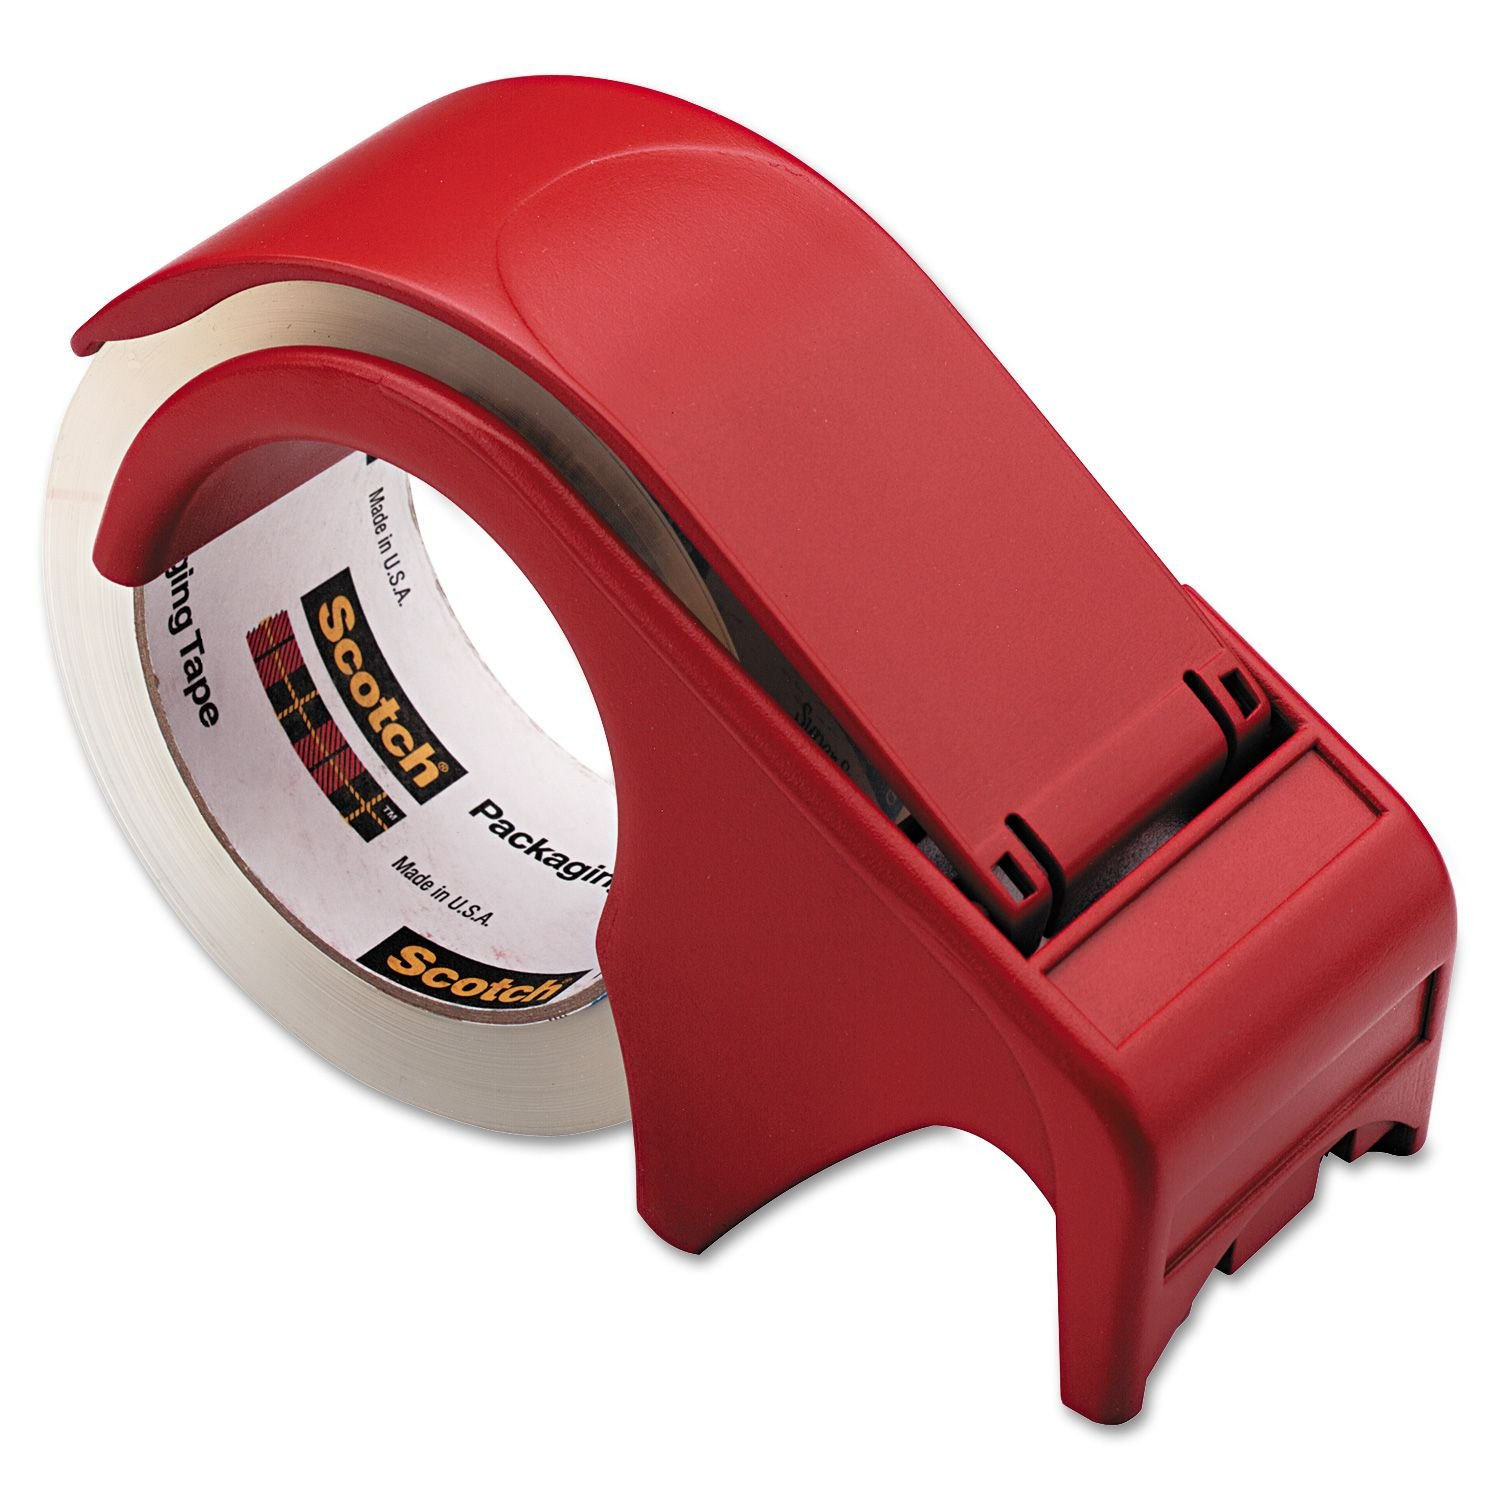 Scotch Compact and Quick Loading Dispenser for Box Sealing Tape, 3 Core, Plastic, Red kitmmmc32helmetsfunv72220 value kit scotch nfl helmet tape dispenser mmmc32helmetsf and universal smooth paper clips unv72220